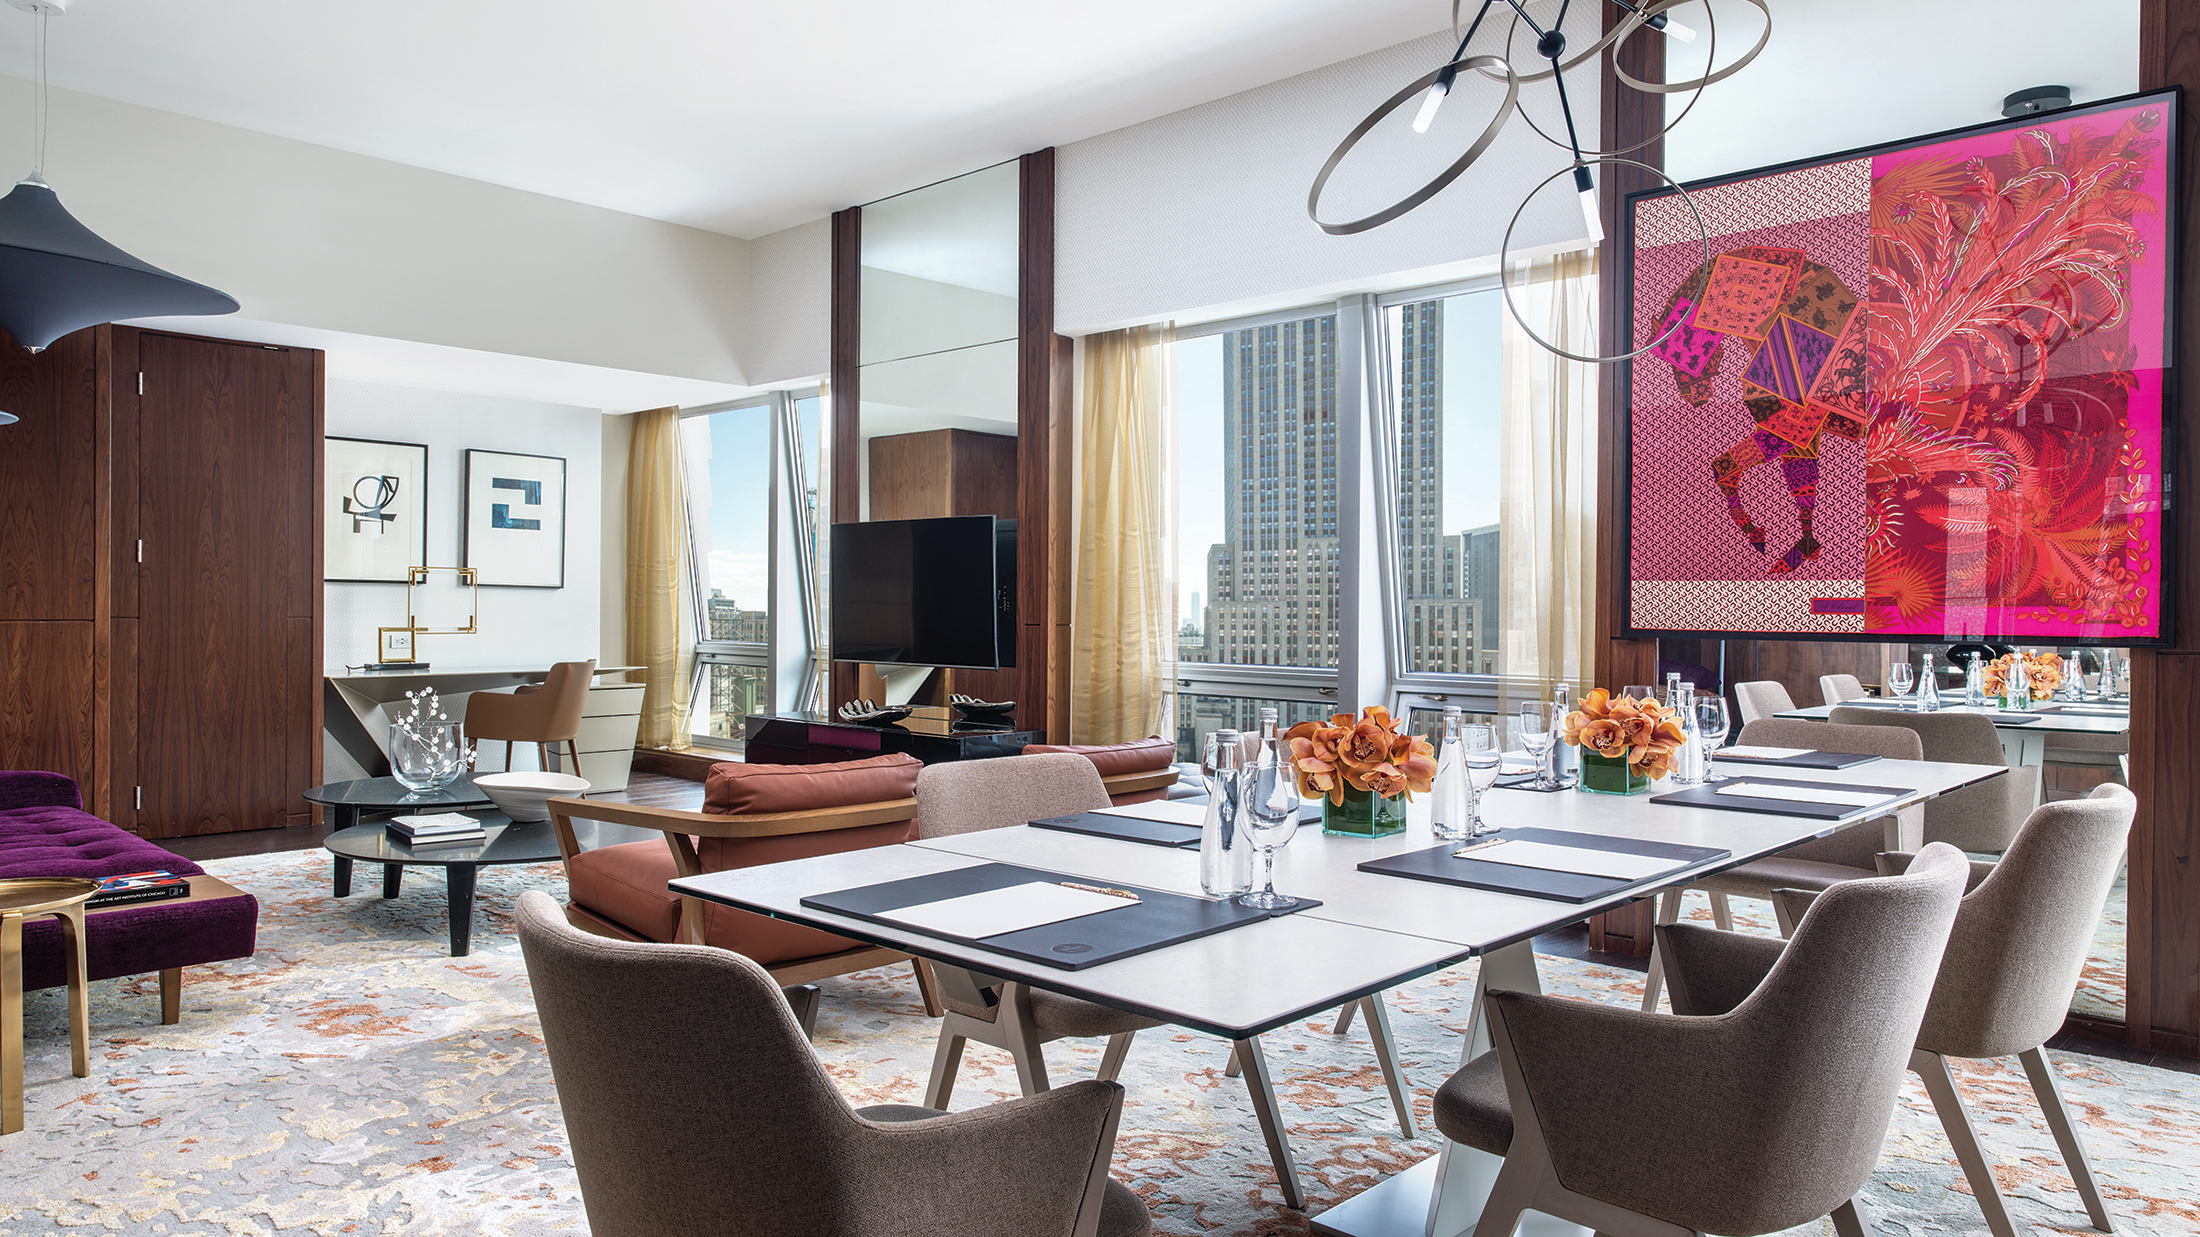 Guests of the Roche Bobois Presidential Suite at Langham Place in New York can order Michelin-starred room service from Ai Fiori.